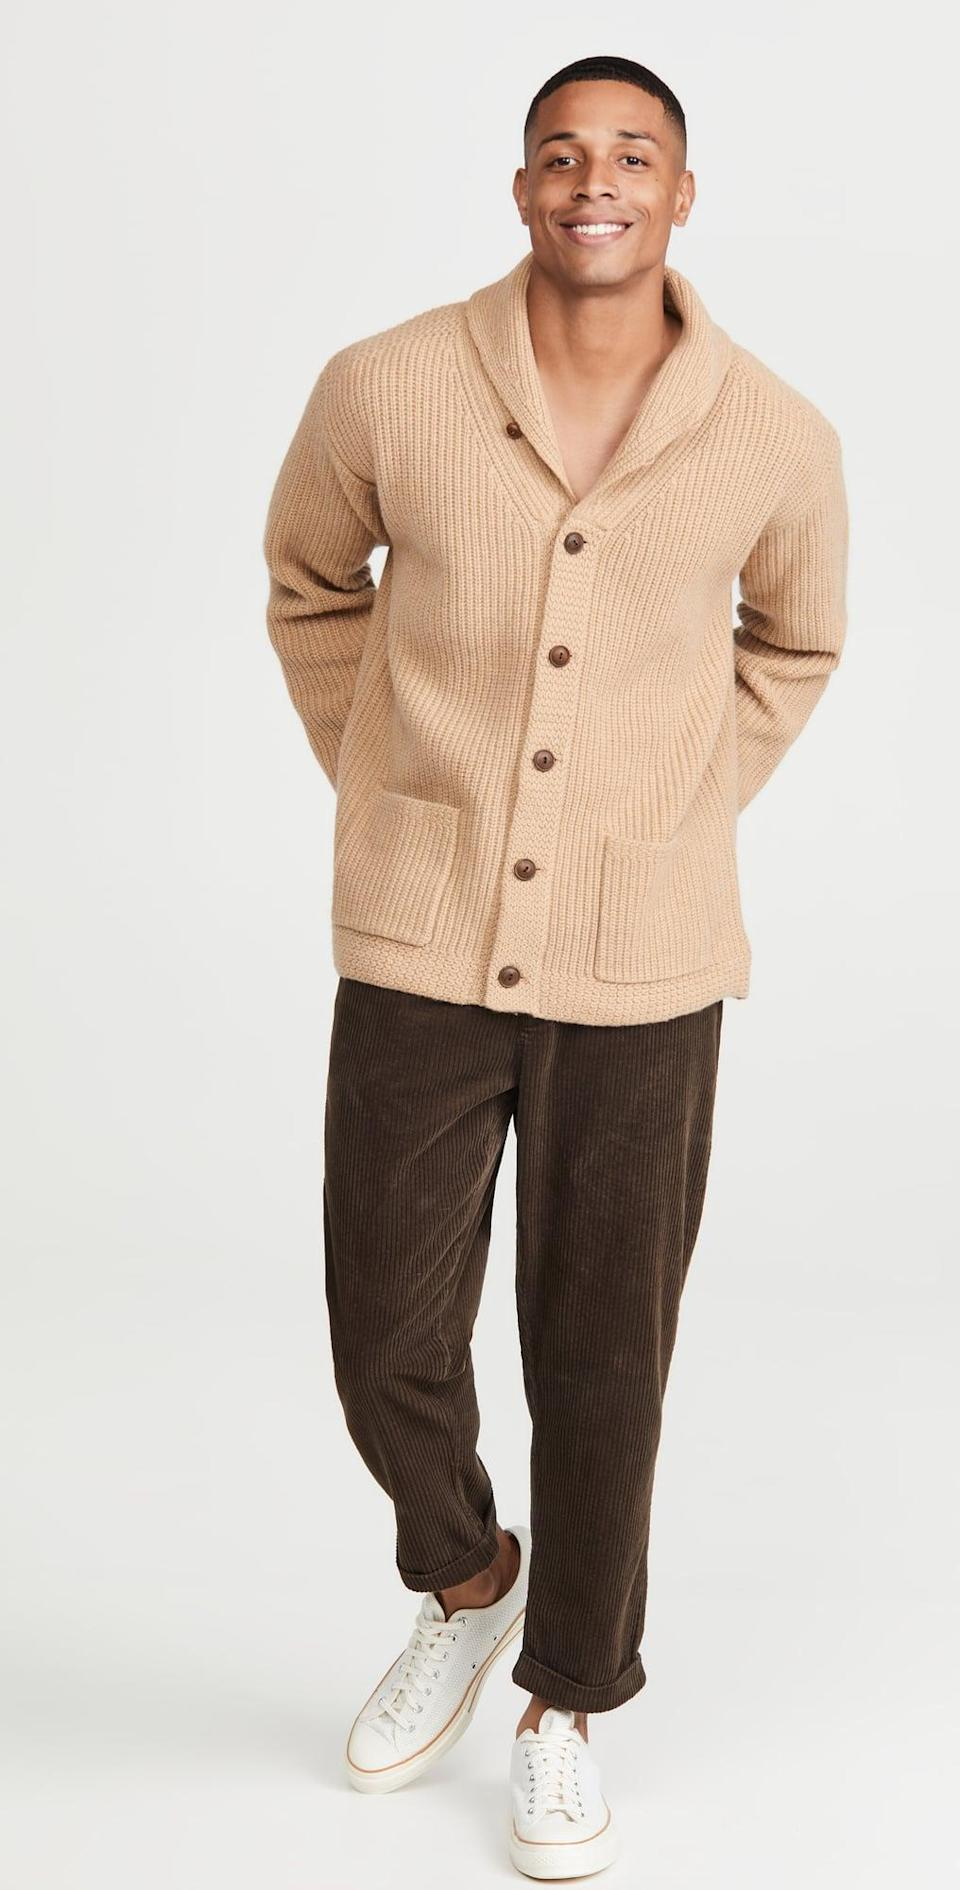 <p>This <span>Polo Ralph Lauren Wool Cashmere Cardigan</span> ($298) was made to be lived in, thanks to the roomy silhouette, modern design, and put-together look. It's a great one to wear to the office and beyond.</p>